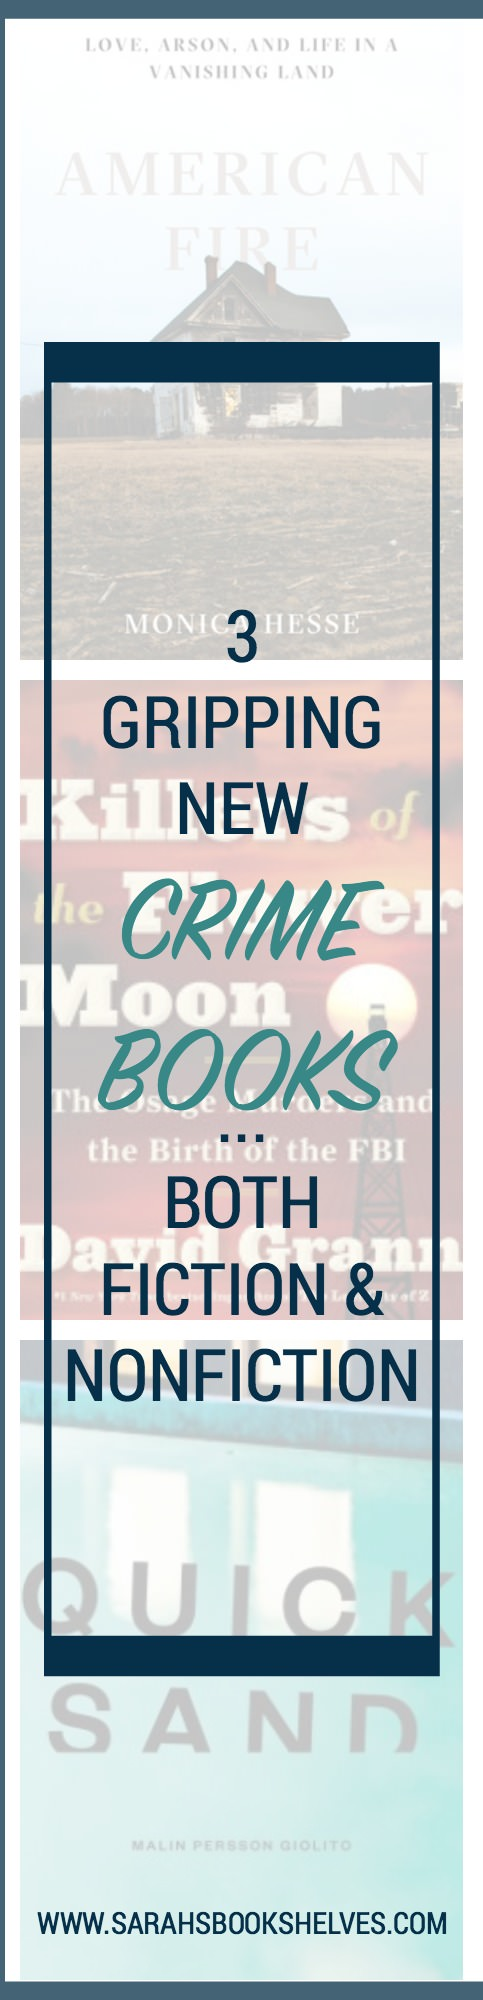 3 Gripping New Crime Books: 2017 has been the year of the crime book for me...with fiction and nonfiction books both hitting the spot! One of these books is a 5 star read for me...read the post to find out which one!